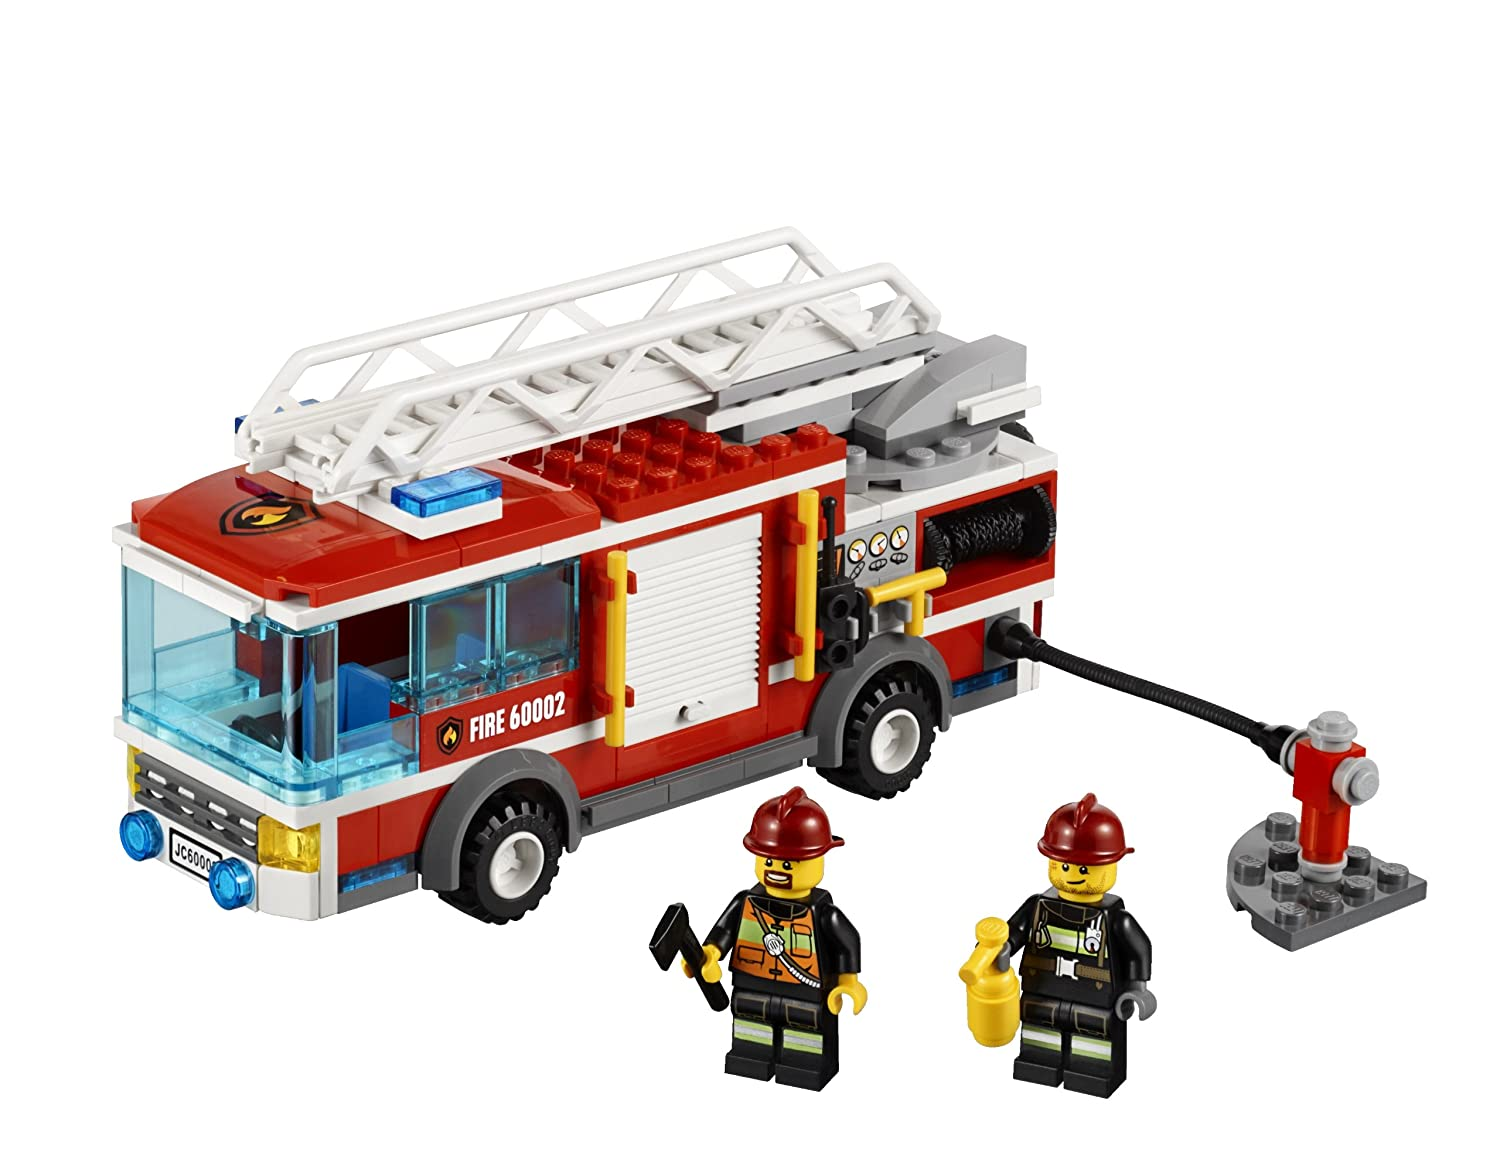 amazon com lego city fire truck 60002 toys games